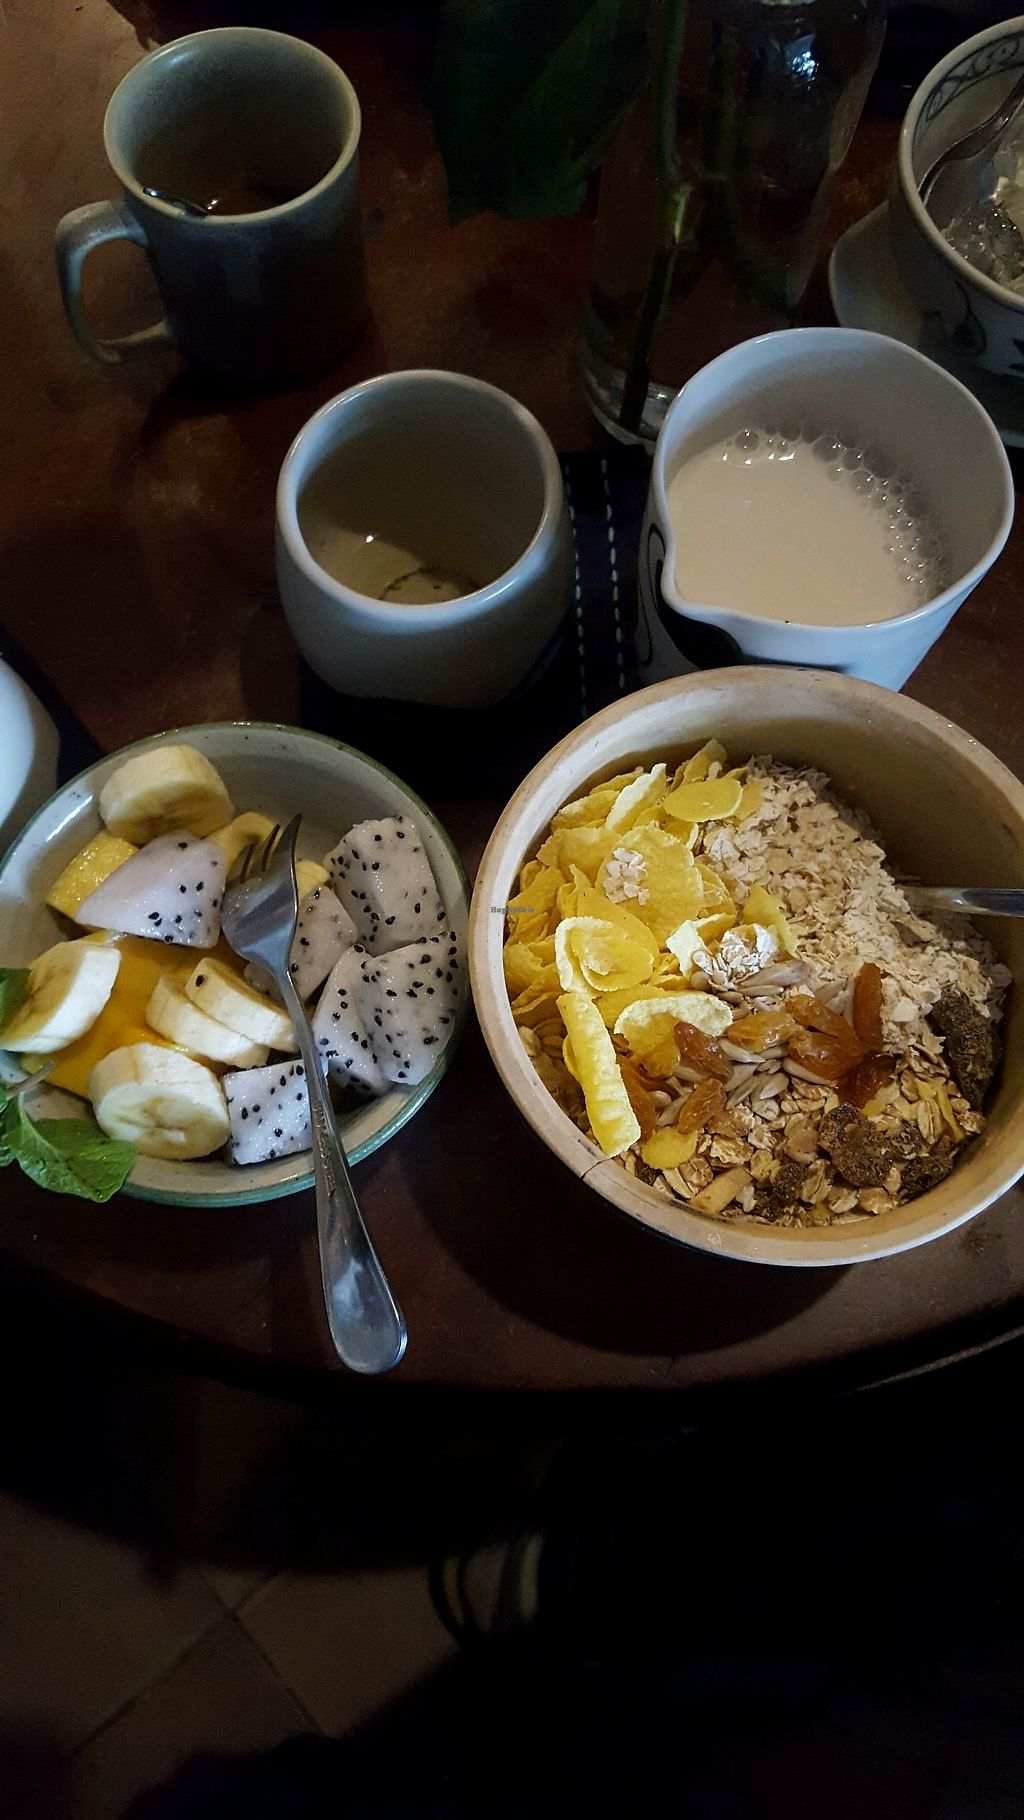 """Photo of Tree Hugger Cafe  by <a href=""""/members/profile/nina.tica"""">nina.tica</a> <br/>tree hugger müsli with fresh food and soy milk ♡ <br/> December 13, 2017  - <a href='/contact/abuse/image/82194/335104'>Report</a>"""